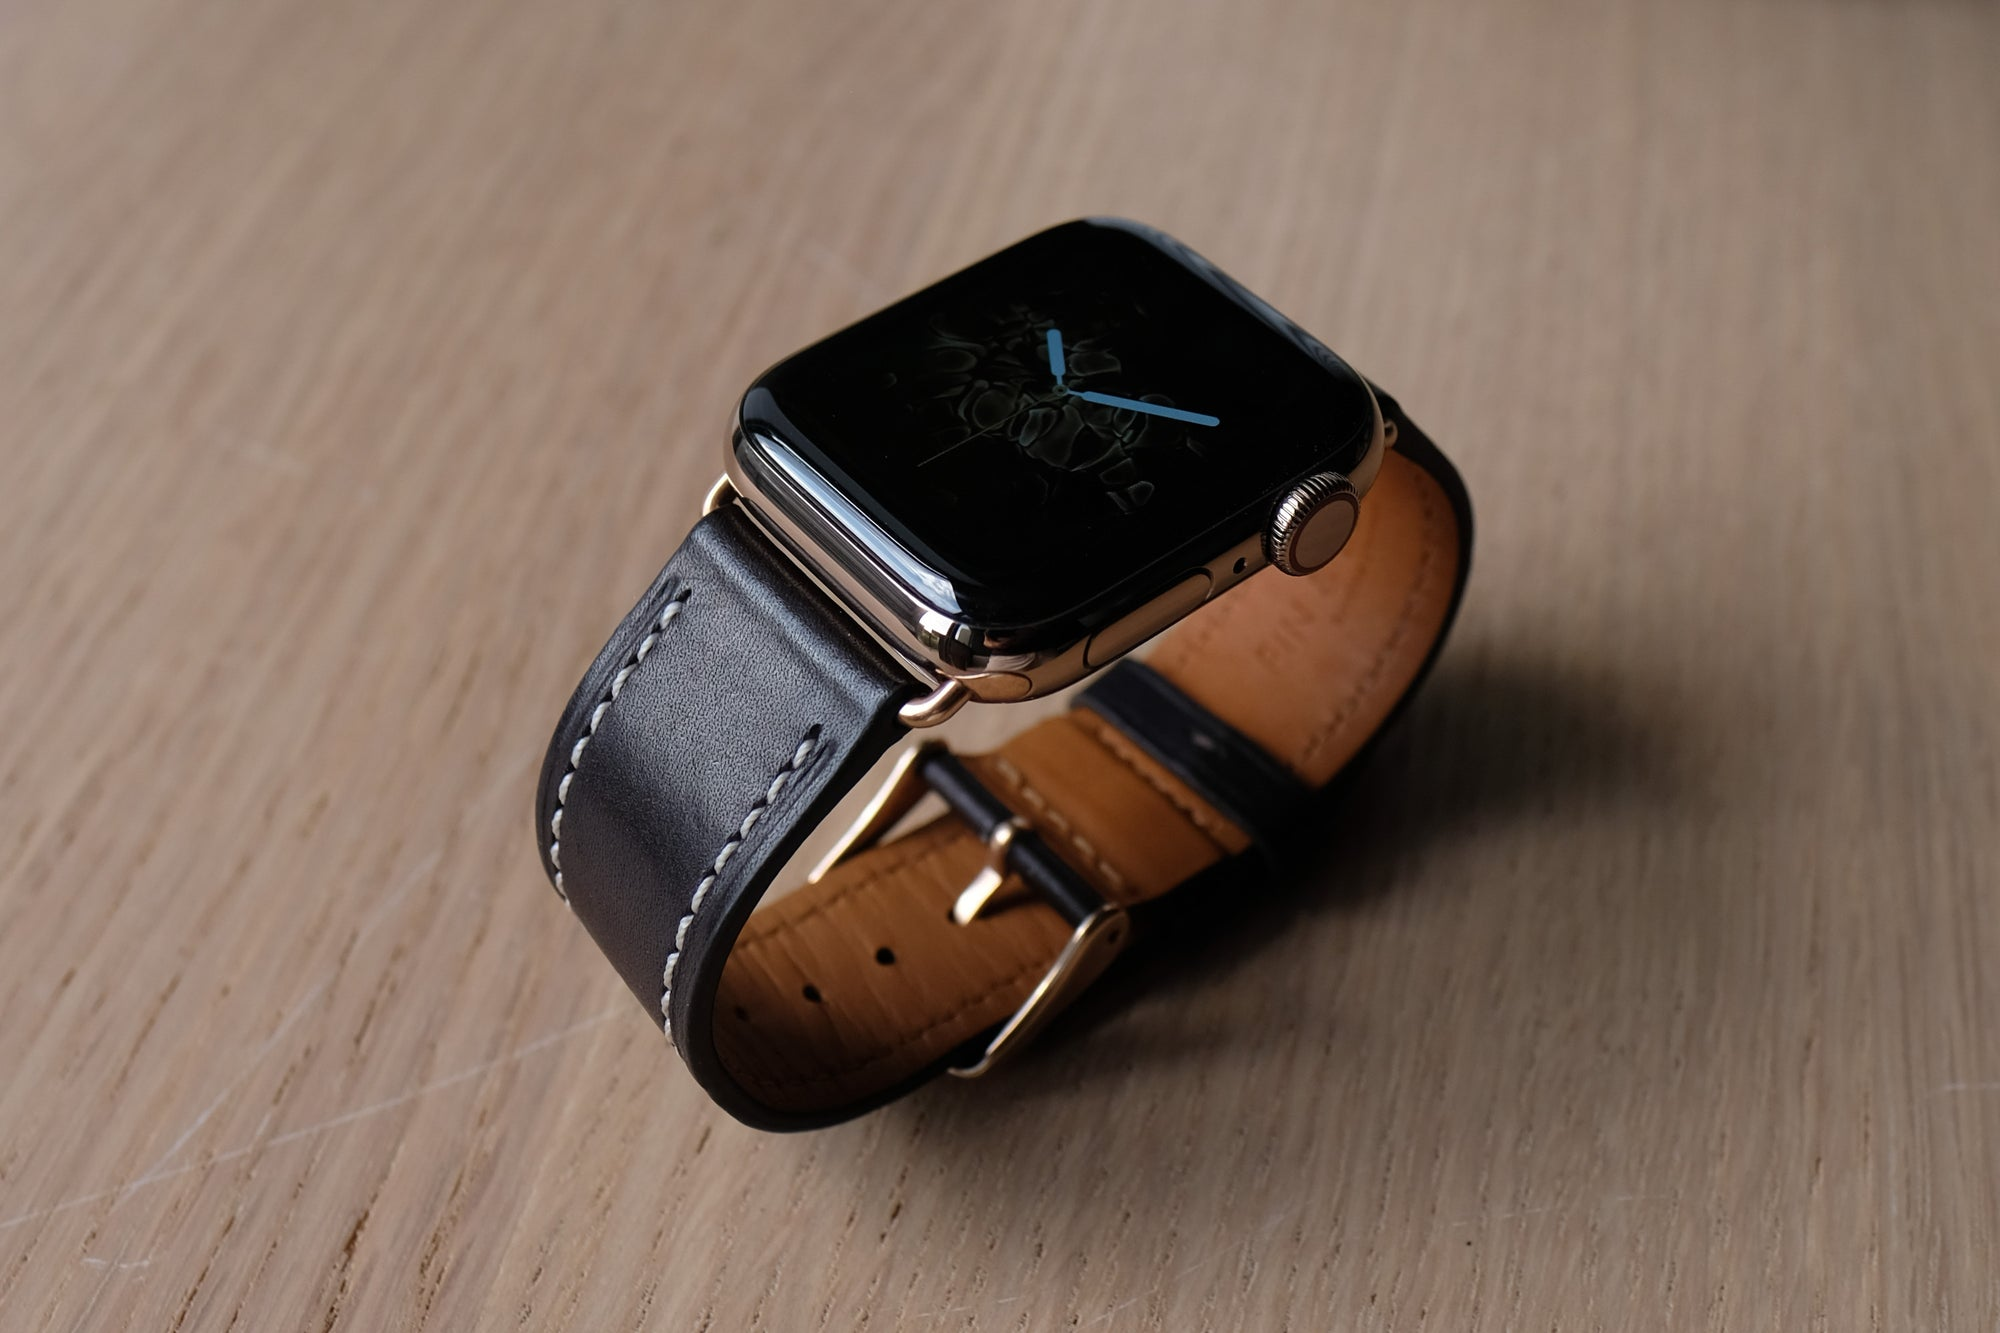 Barenia Leather Apple Watch Bands by Pin & Buckle - Barenia Leather - Dark Chocolate - Fire Watch Face